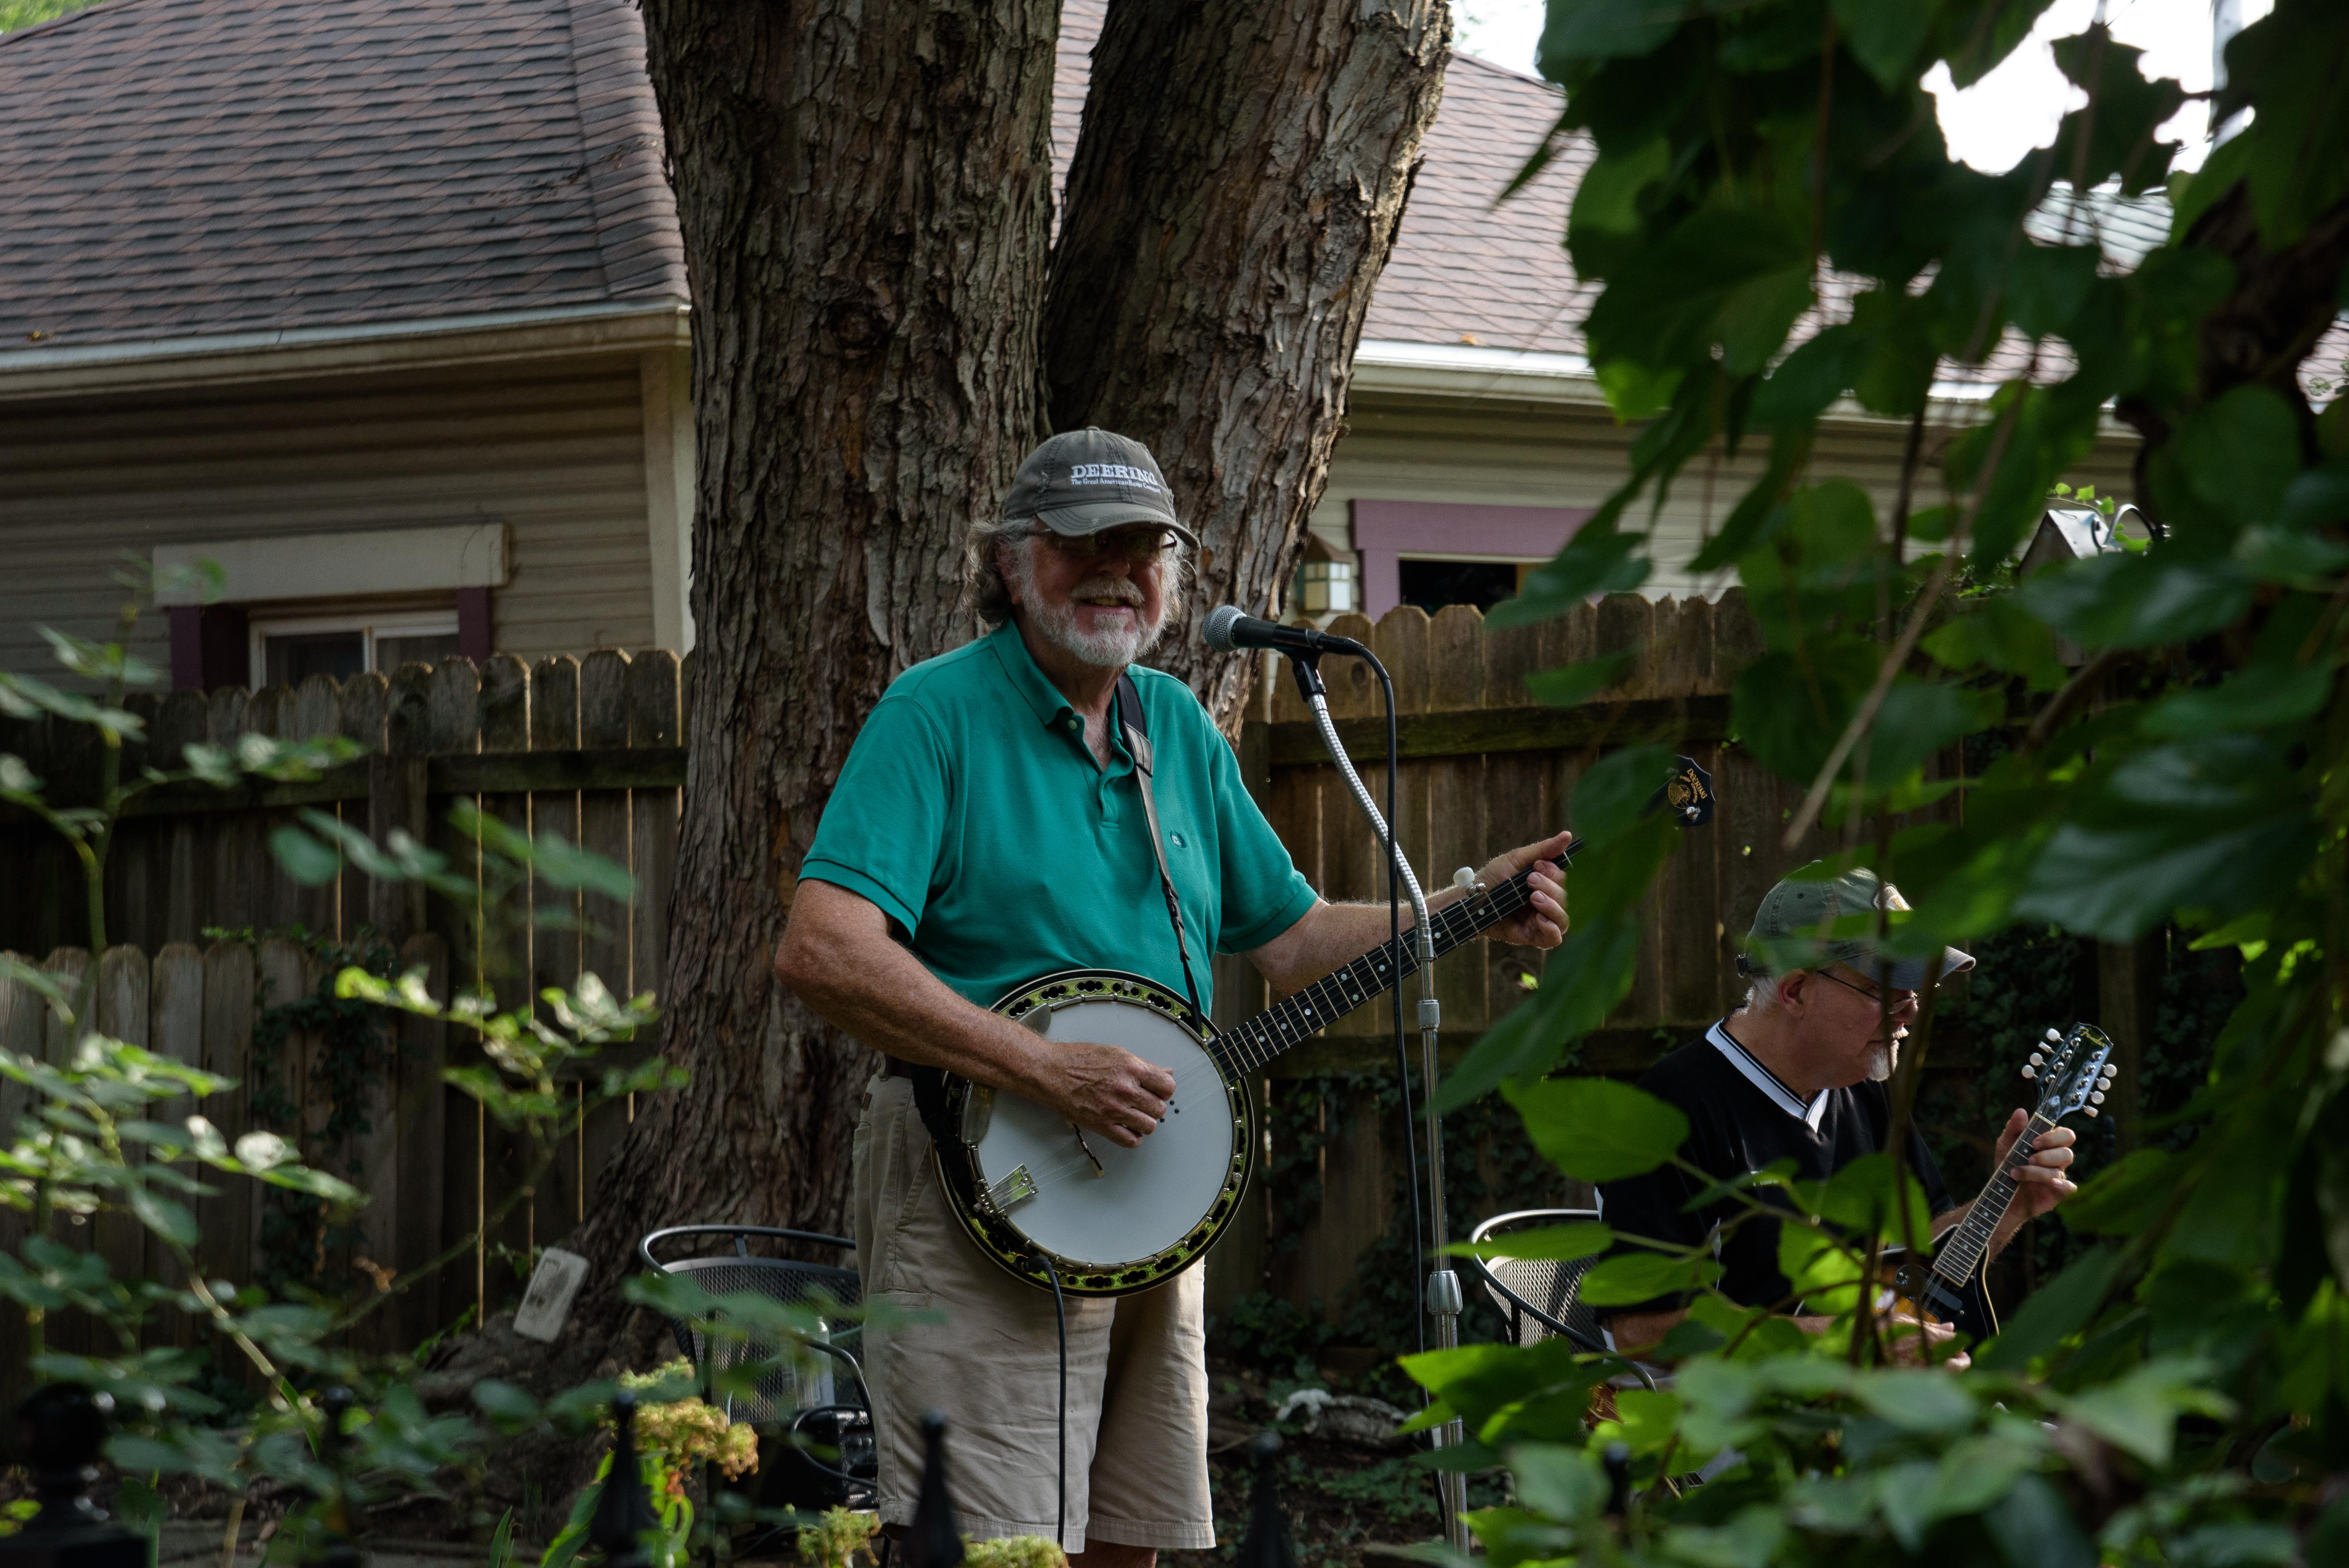 Paul Race and Geoff Walker performing at Dayton Porchfest, 2021